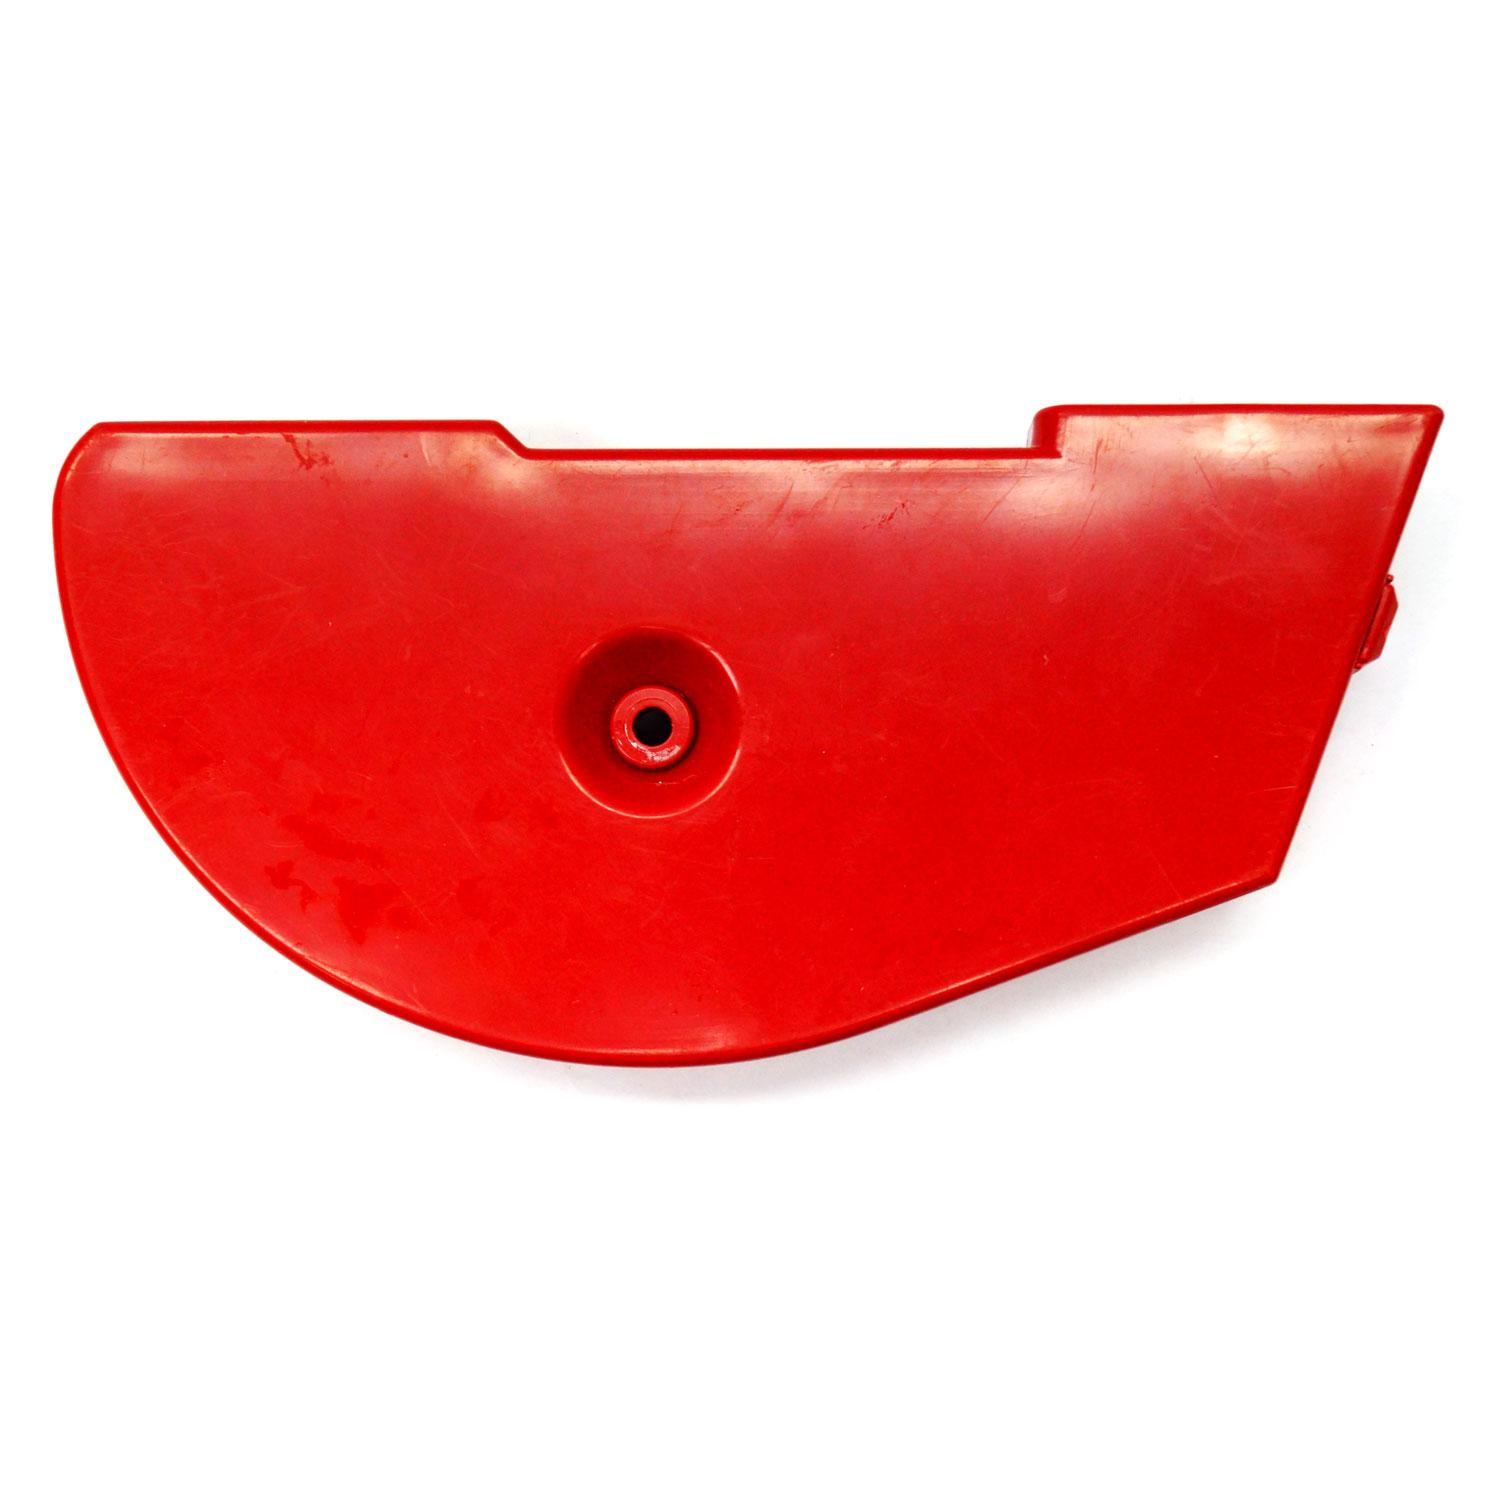 Replacement Bottom Blade Cover for Taurus Ring Saw